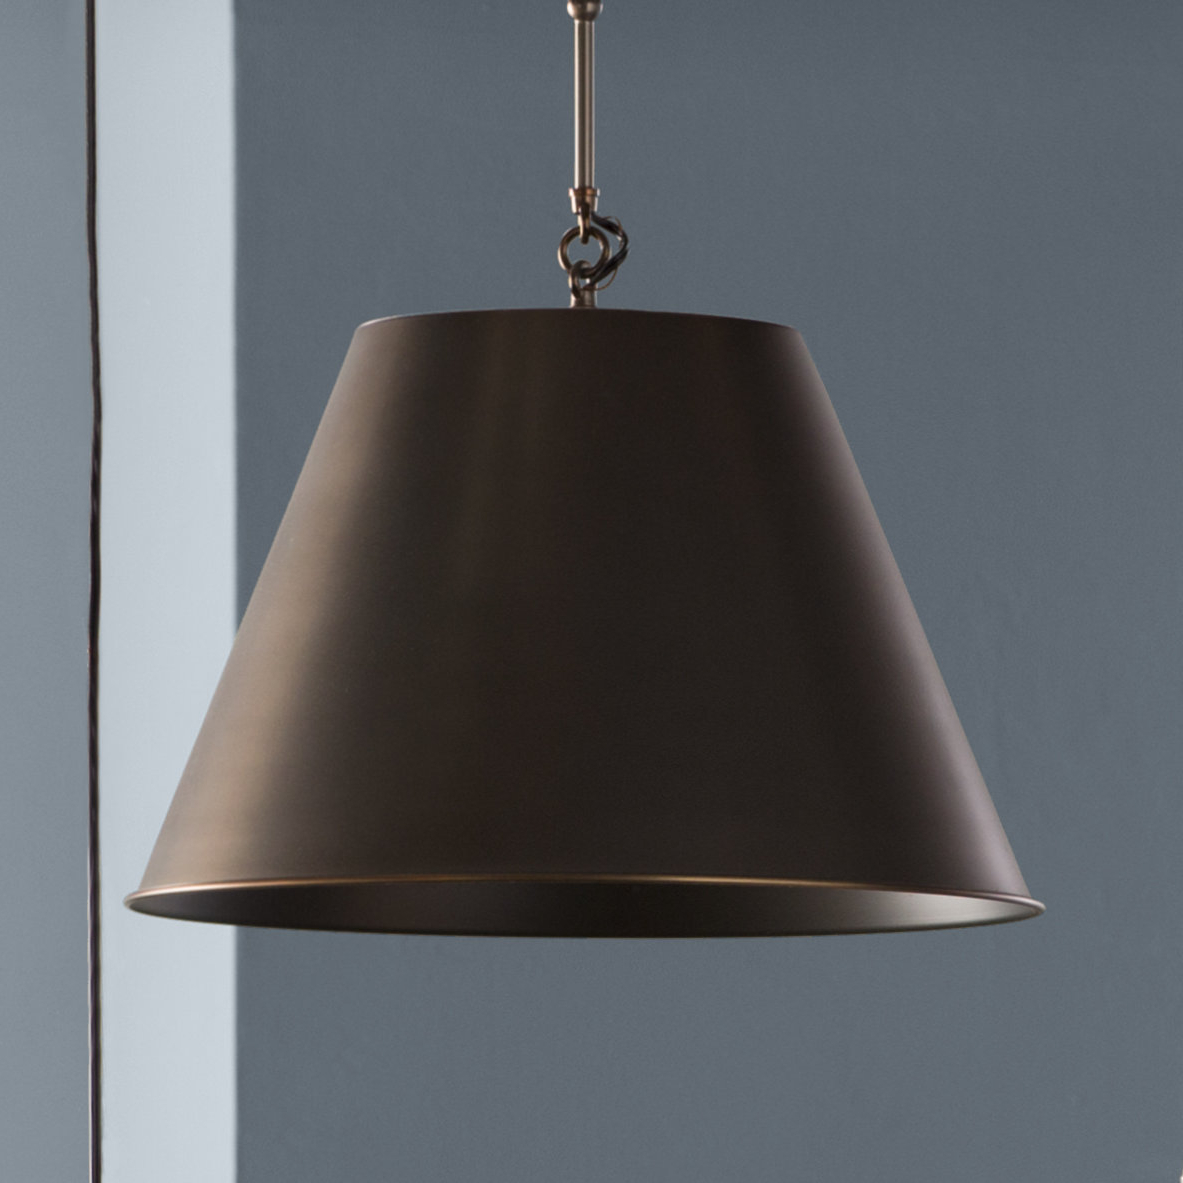 Best And Newest Nadeau 1 Light Single Cone Pendants With Regard To Nadeau 1 Light Single Cone Pendant (View 1 of 20)